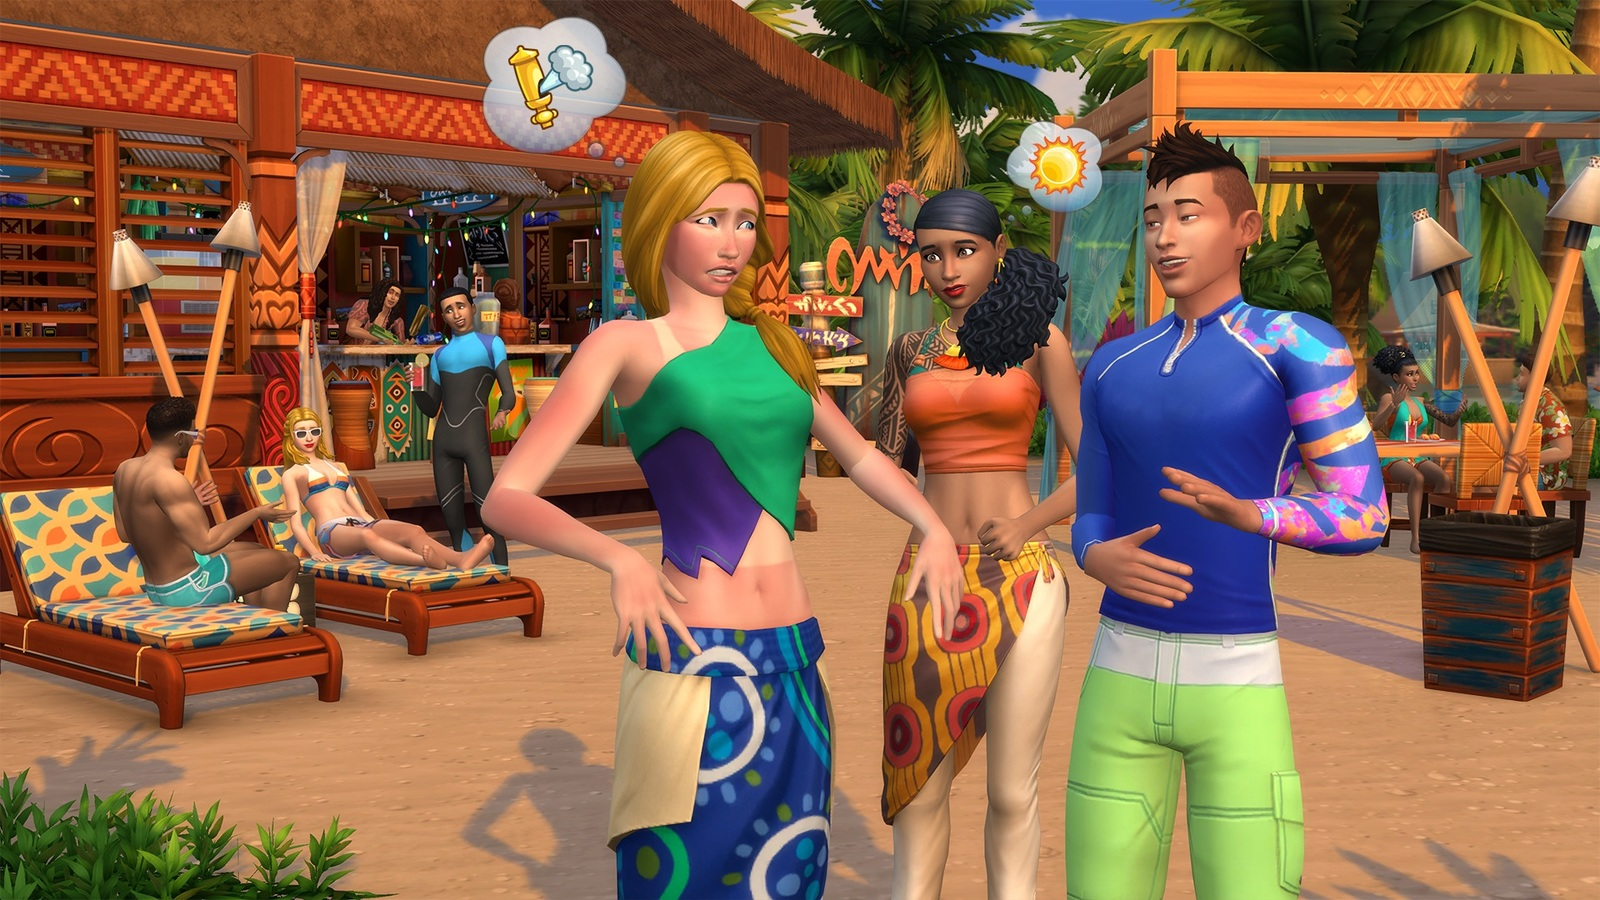 The Sims 4 Island Living (code in box) for PC image